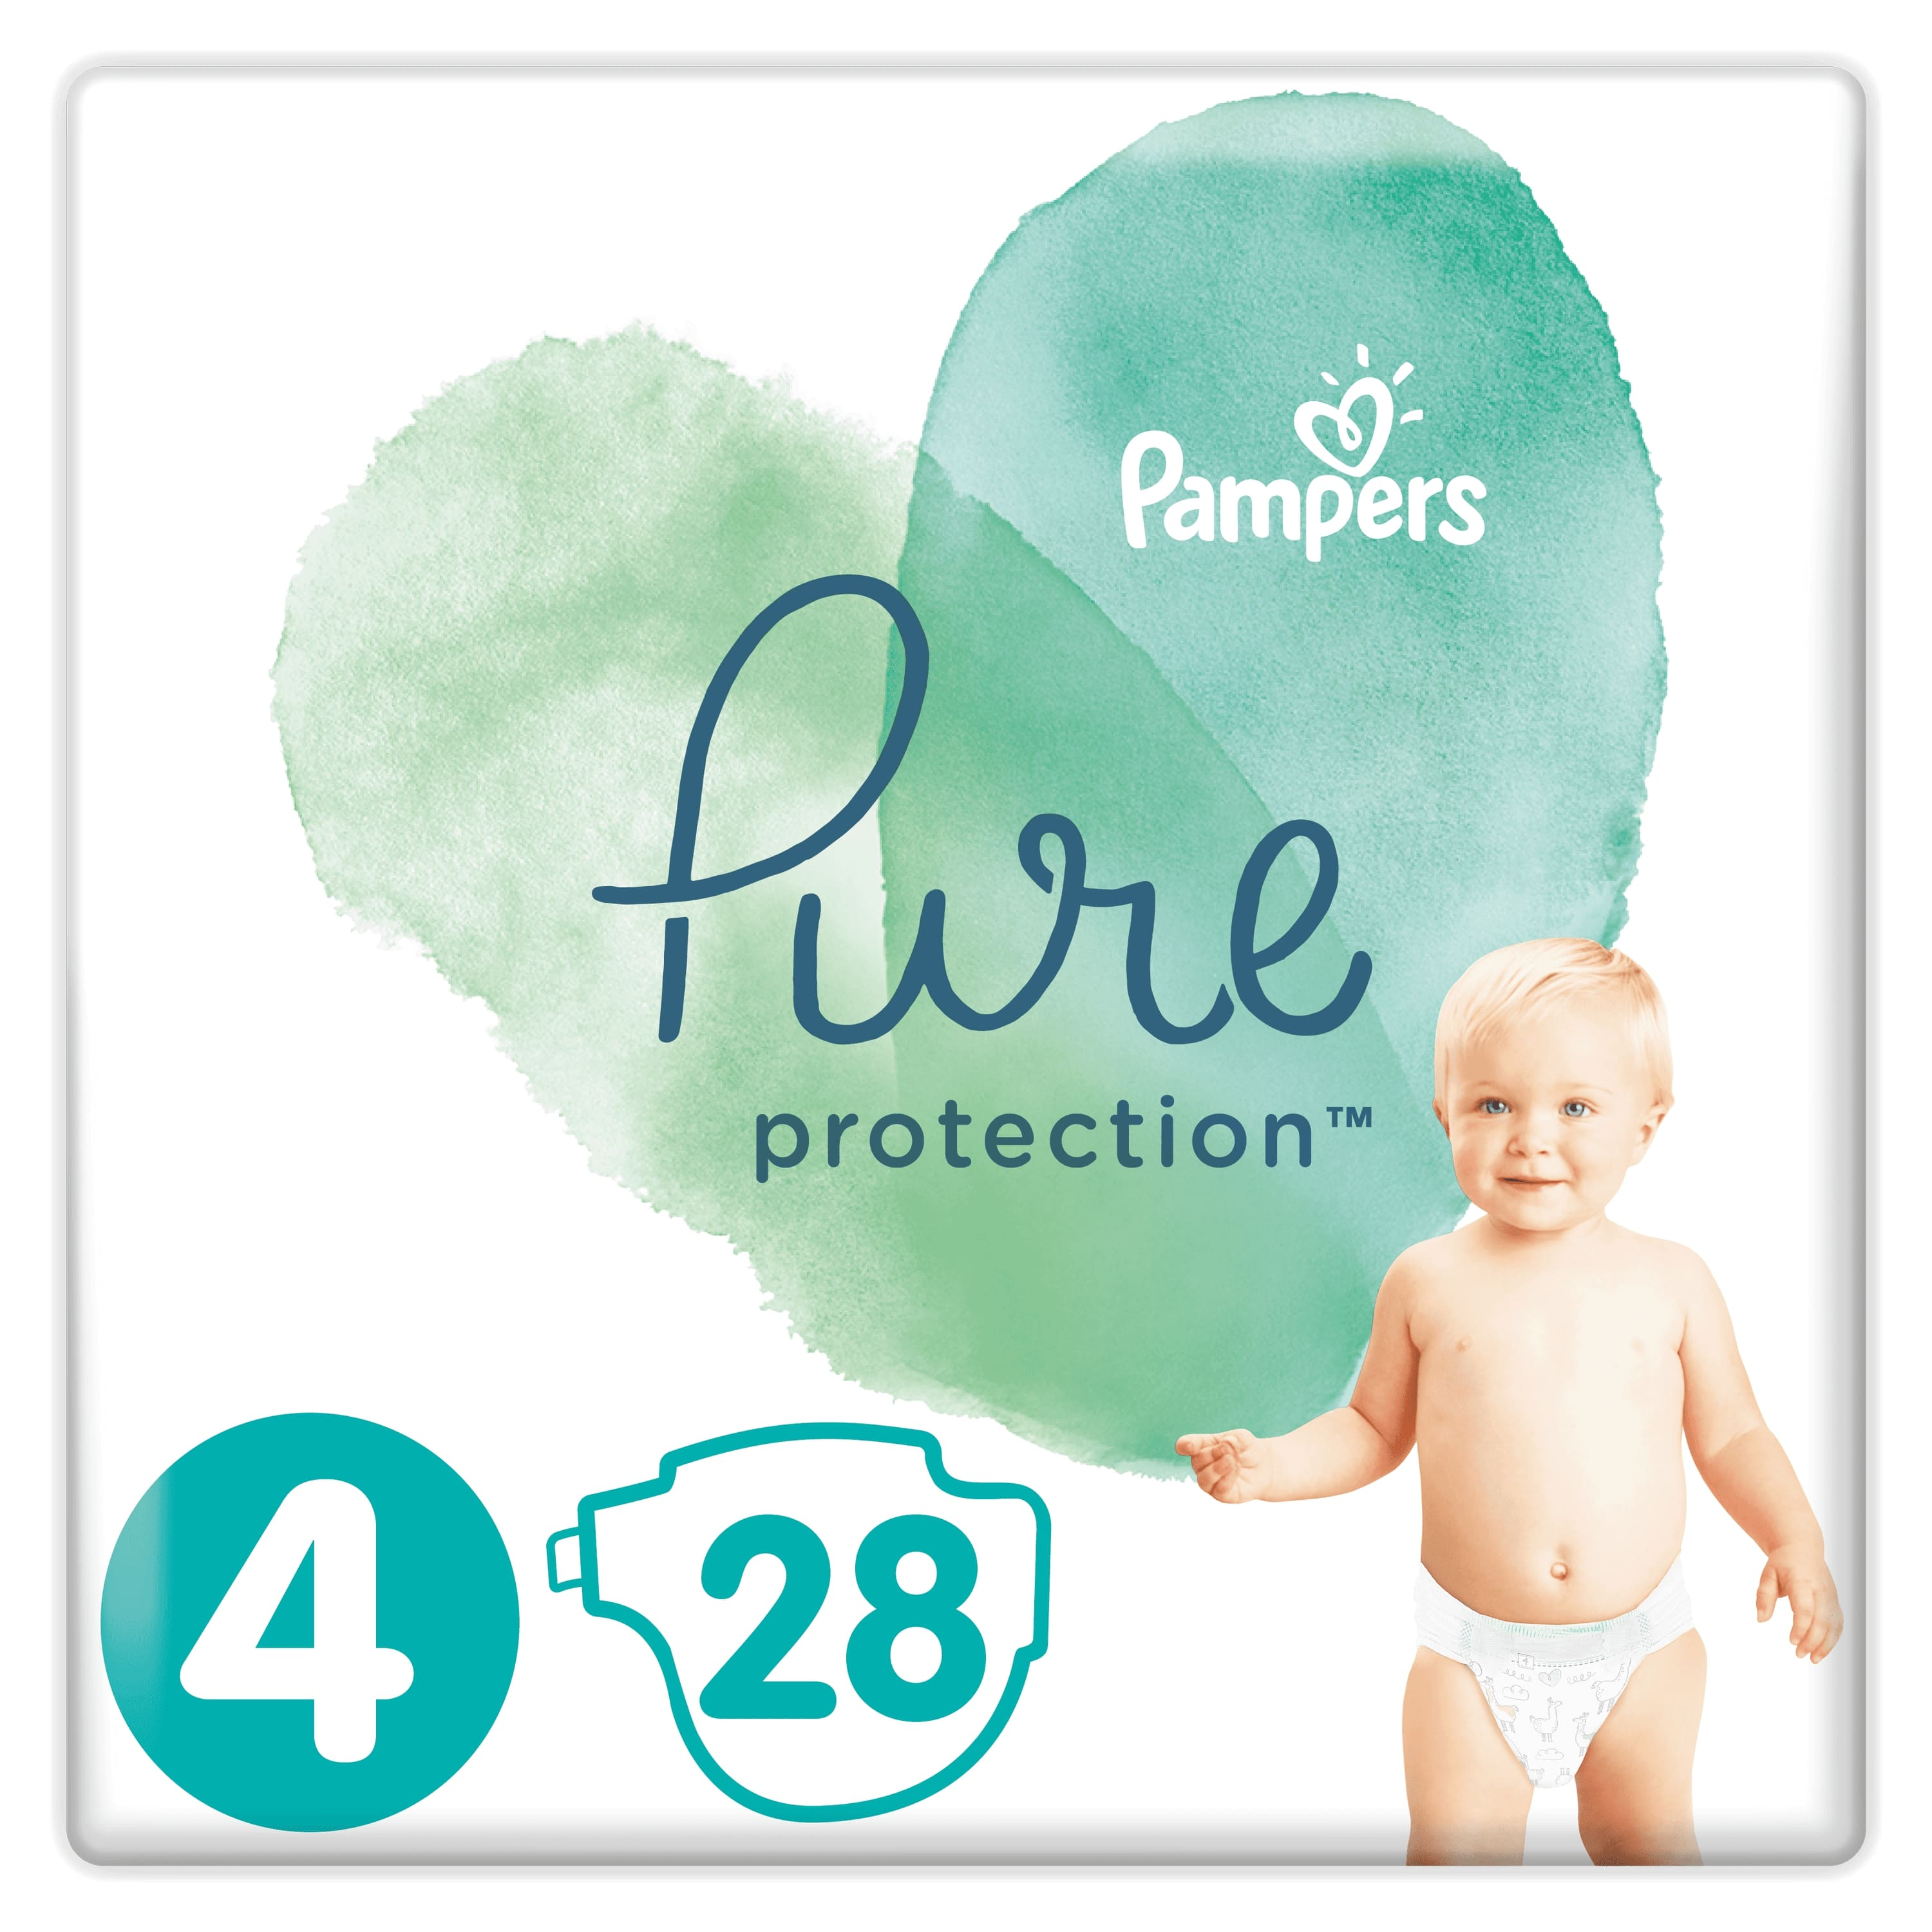 PAMPERS Pure Protection S4, 28 ks (9-14 kg) – jednorazové plienky